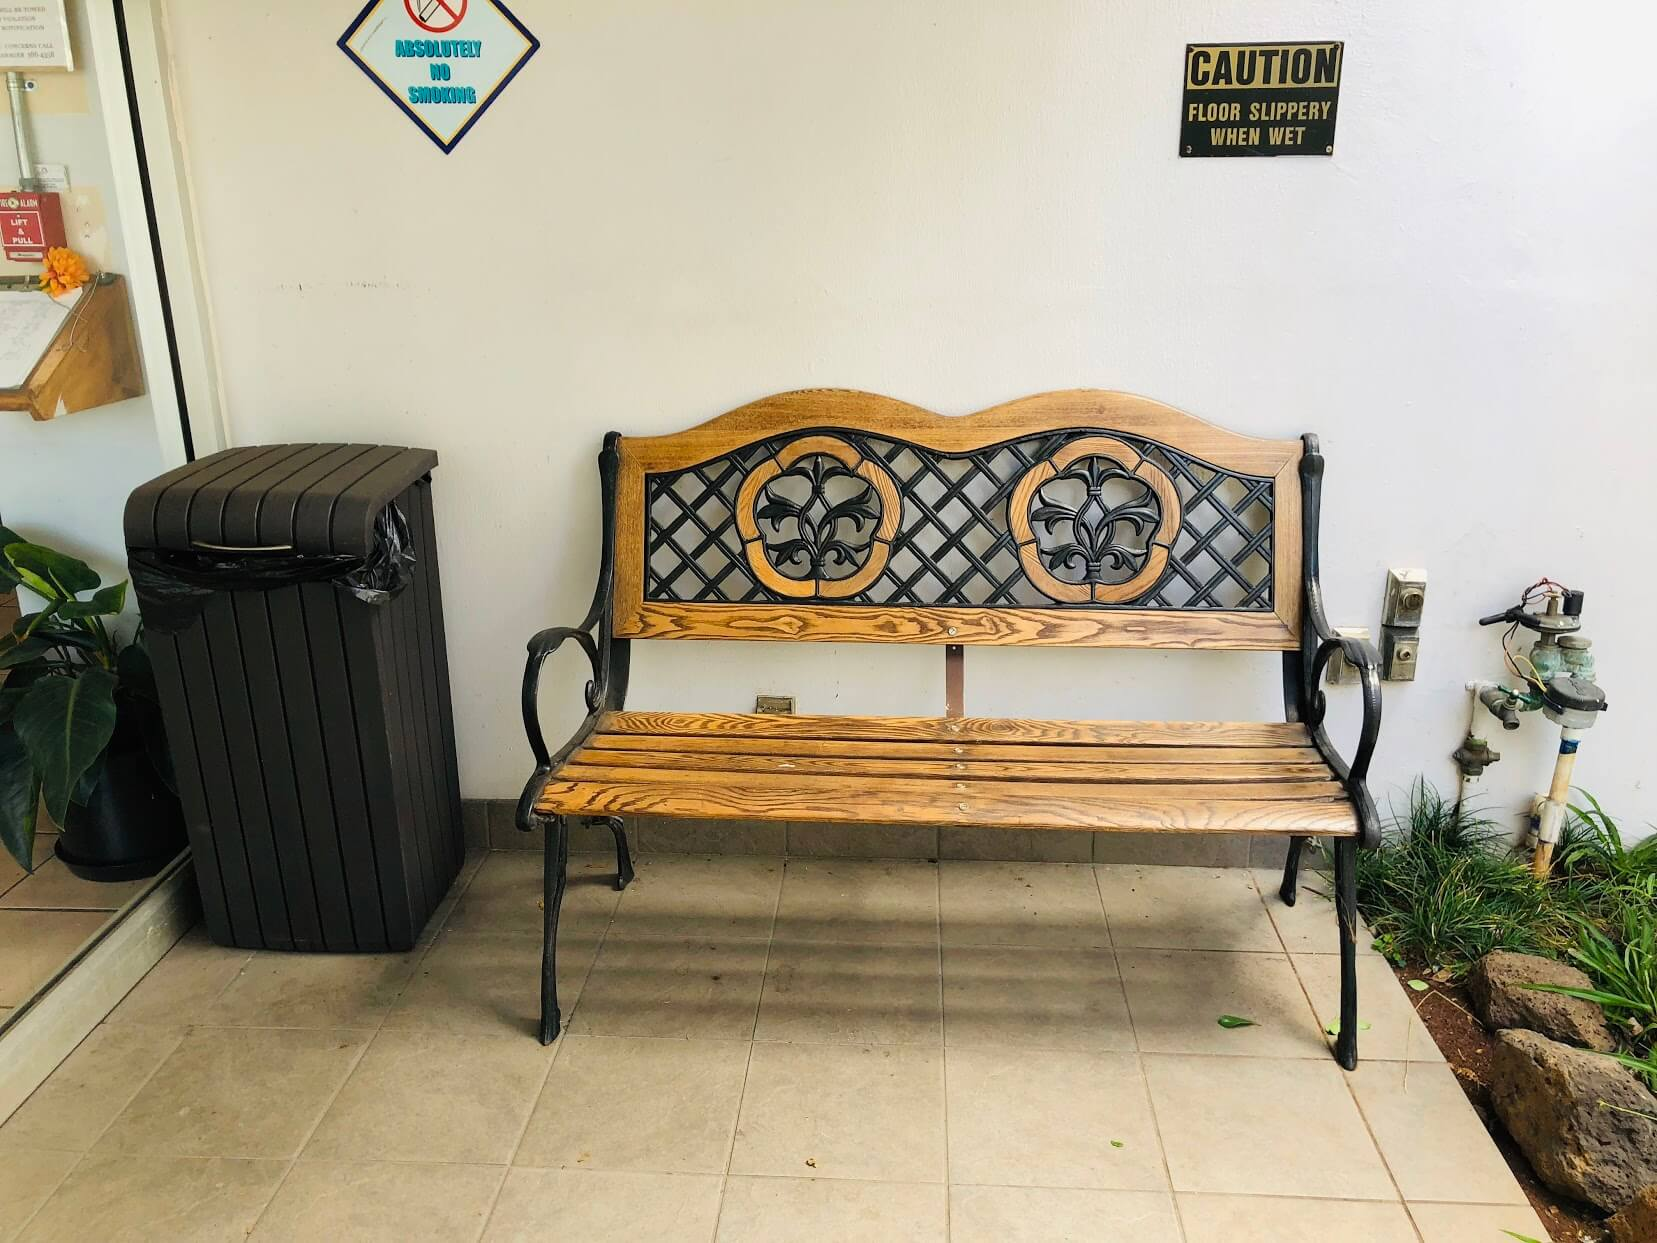 Plaza at Century Courtのベンチ